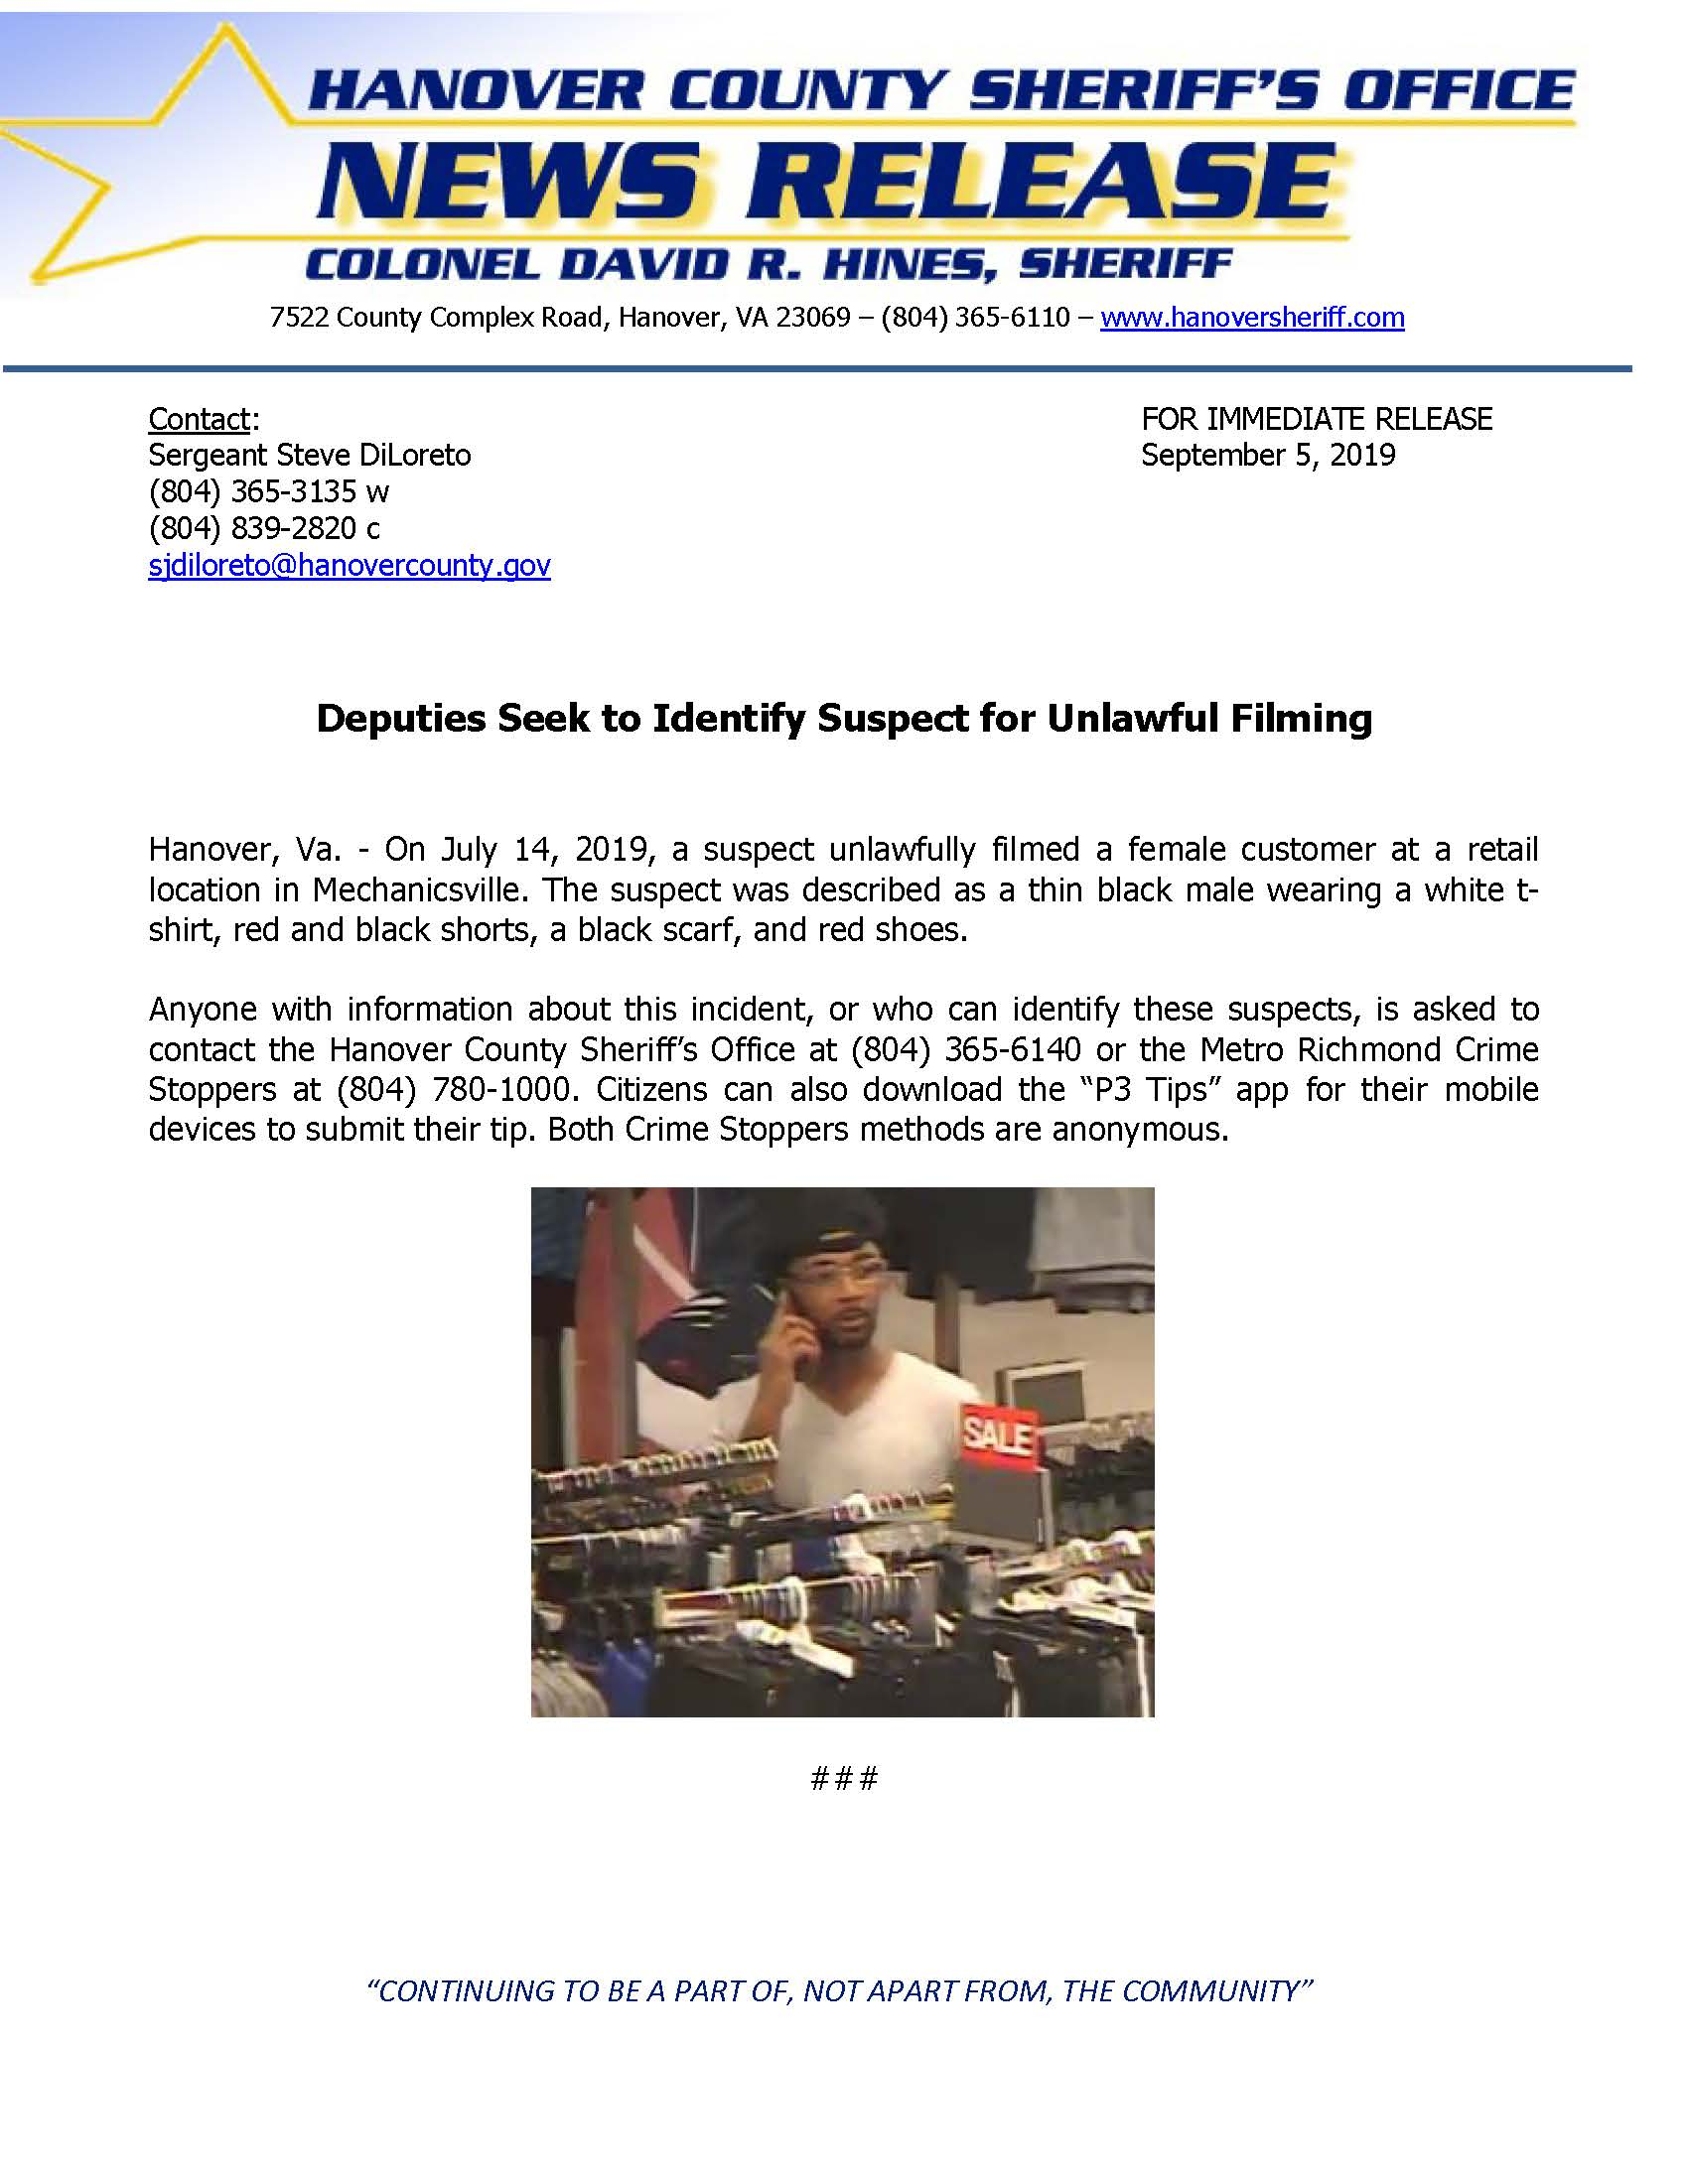 HCSO - Deputies Seek to Identify Suspect for unlawful filming September 5 2019